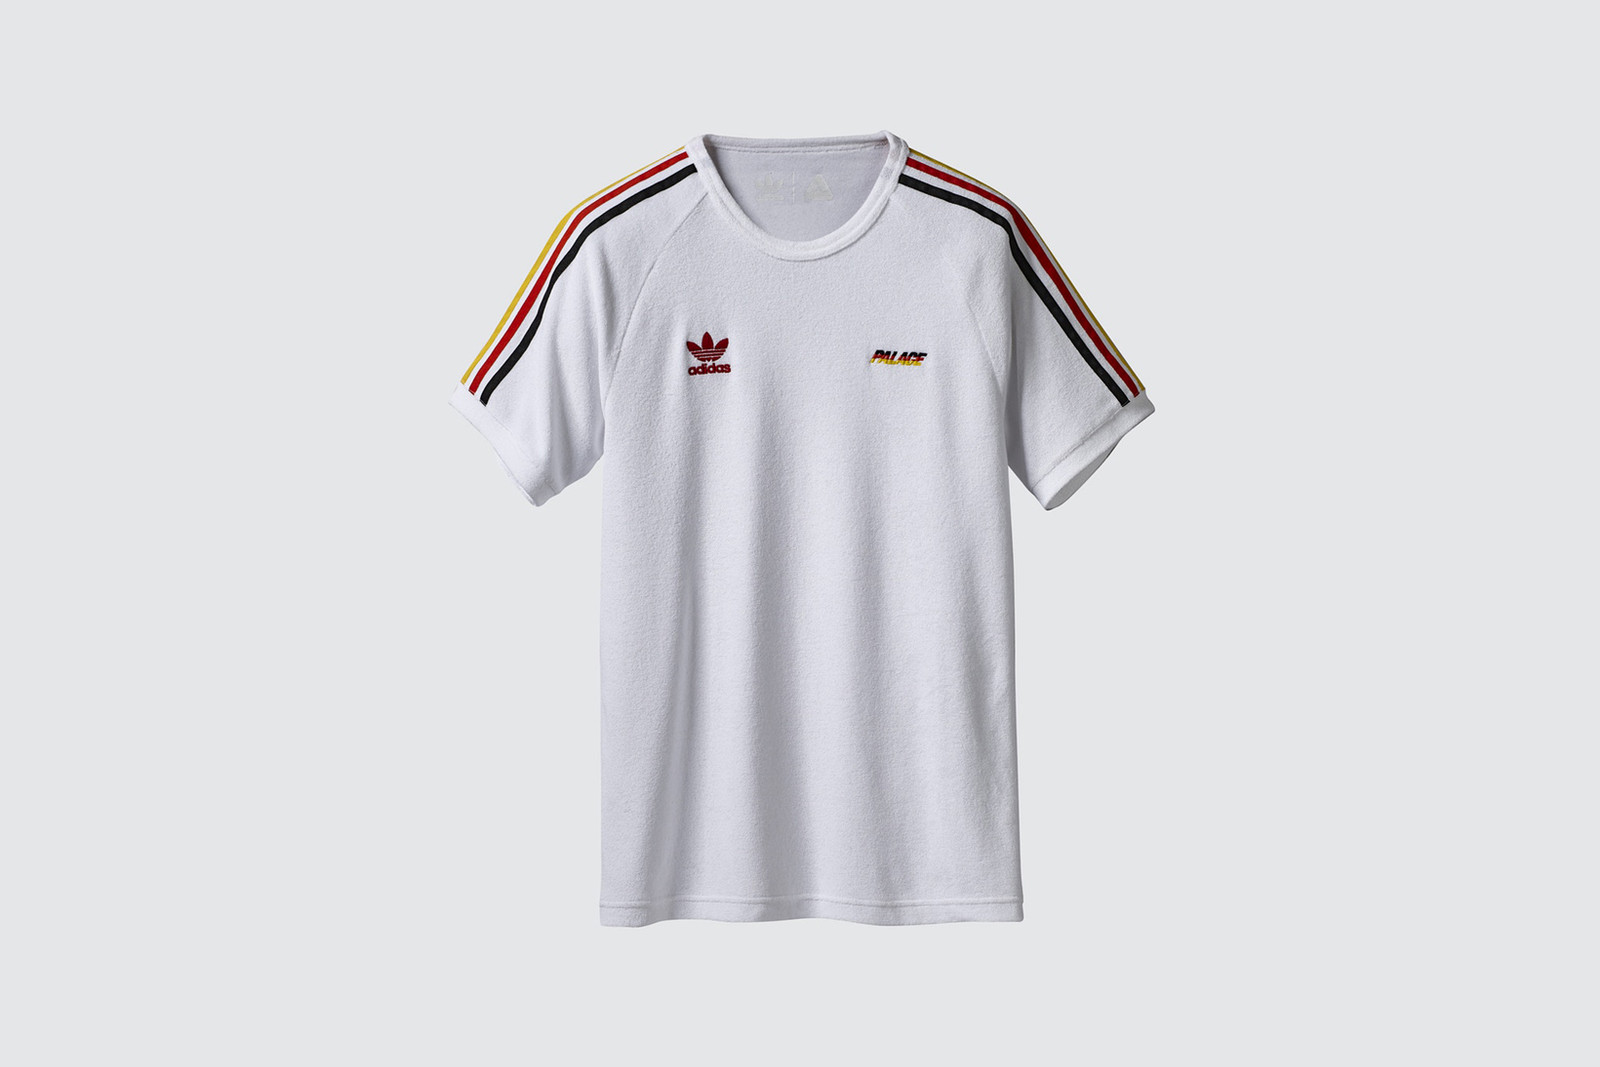 Palace x adidas Originals Summer 2018 Collection Terry Cloth Shirt White